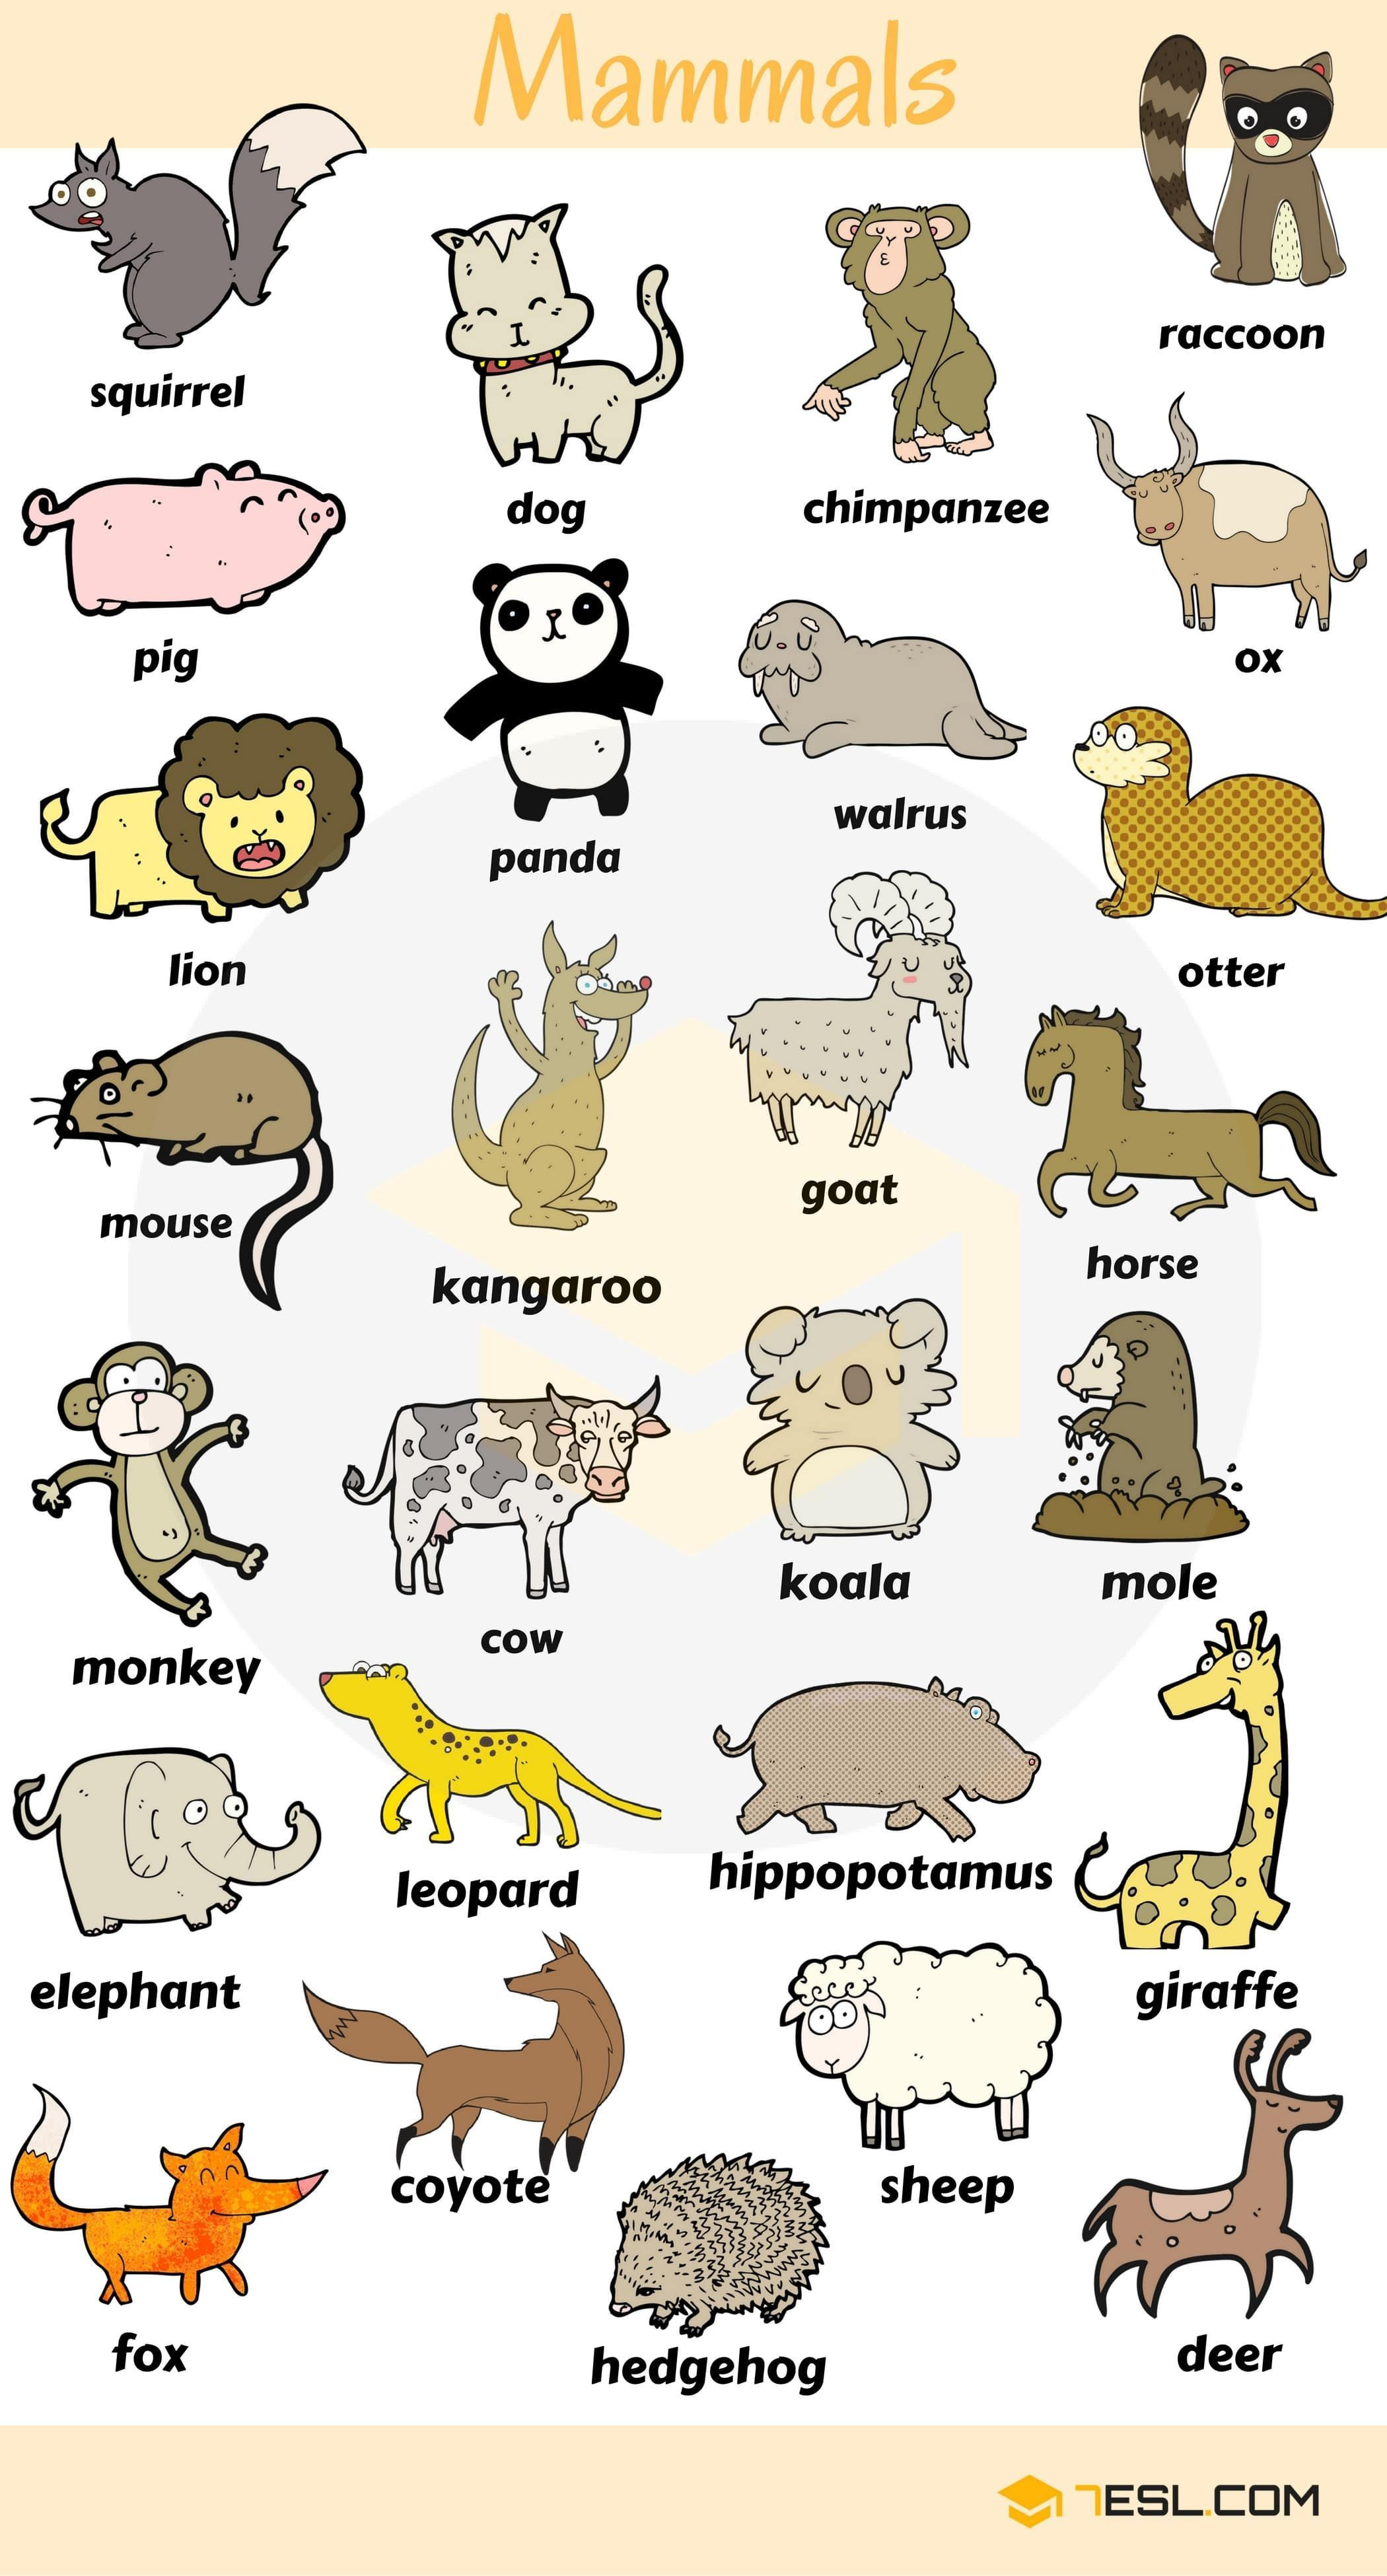 0shares 0 0 0 0everybody Loves Animals Keeping Them As Pets Seeing Them At The Zoo Or Vi Animals Name In English English Vocabulary Learn English Vocabulary